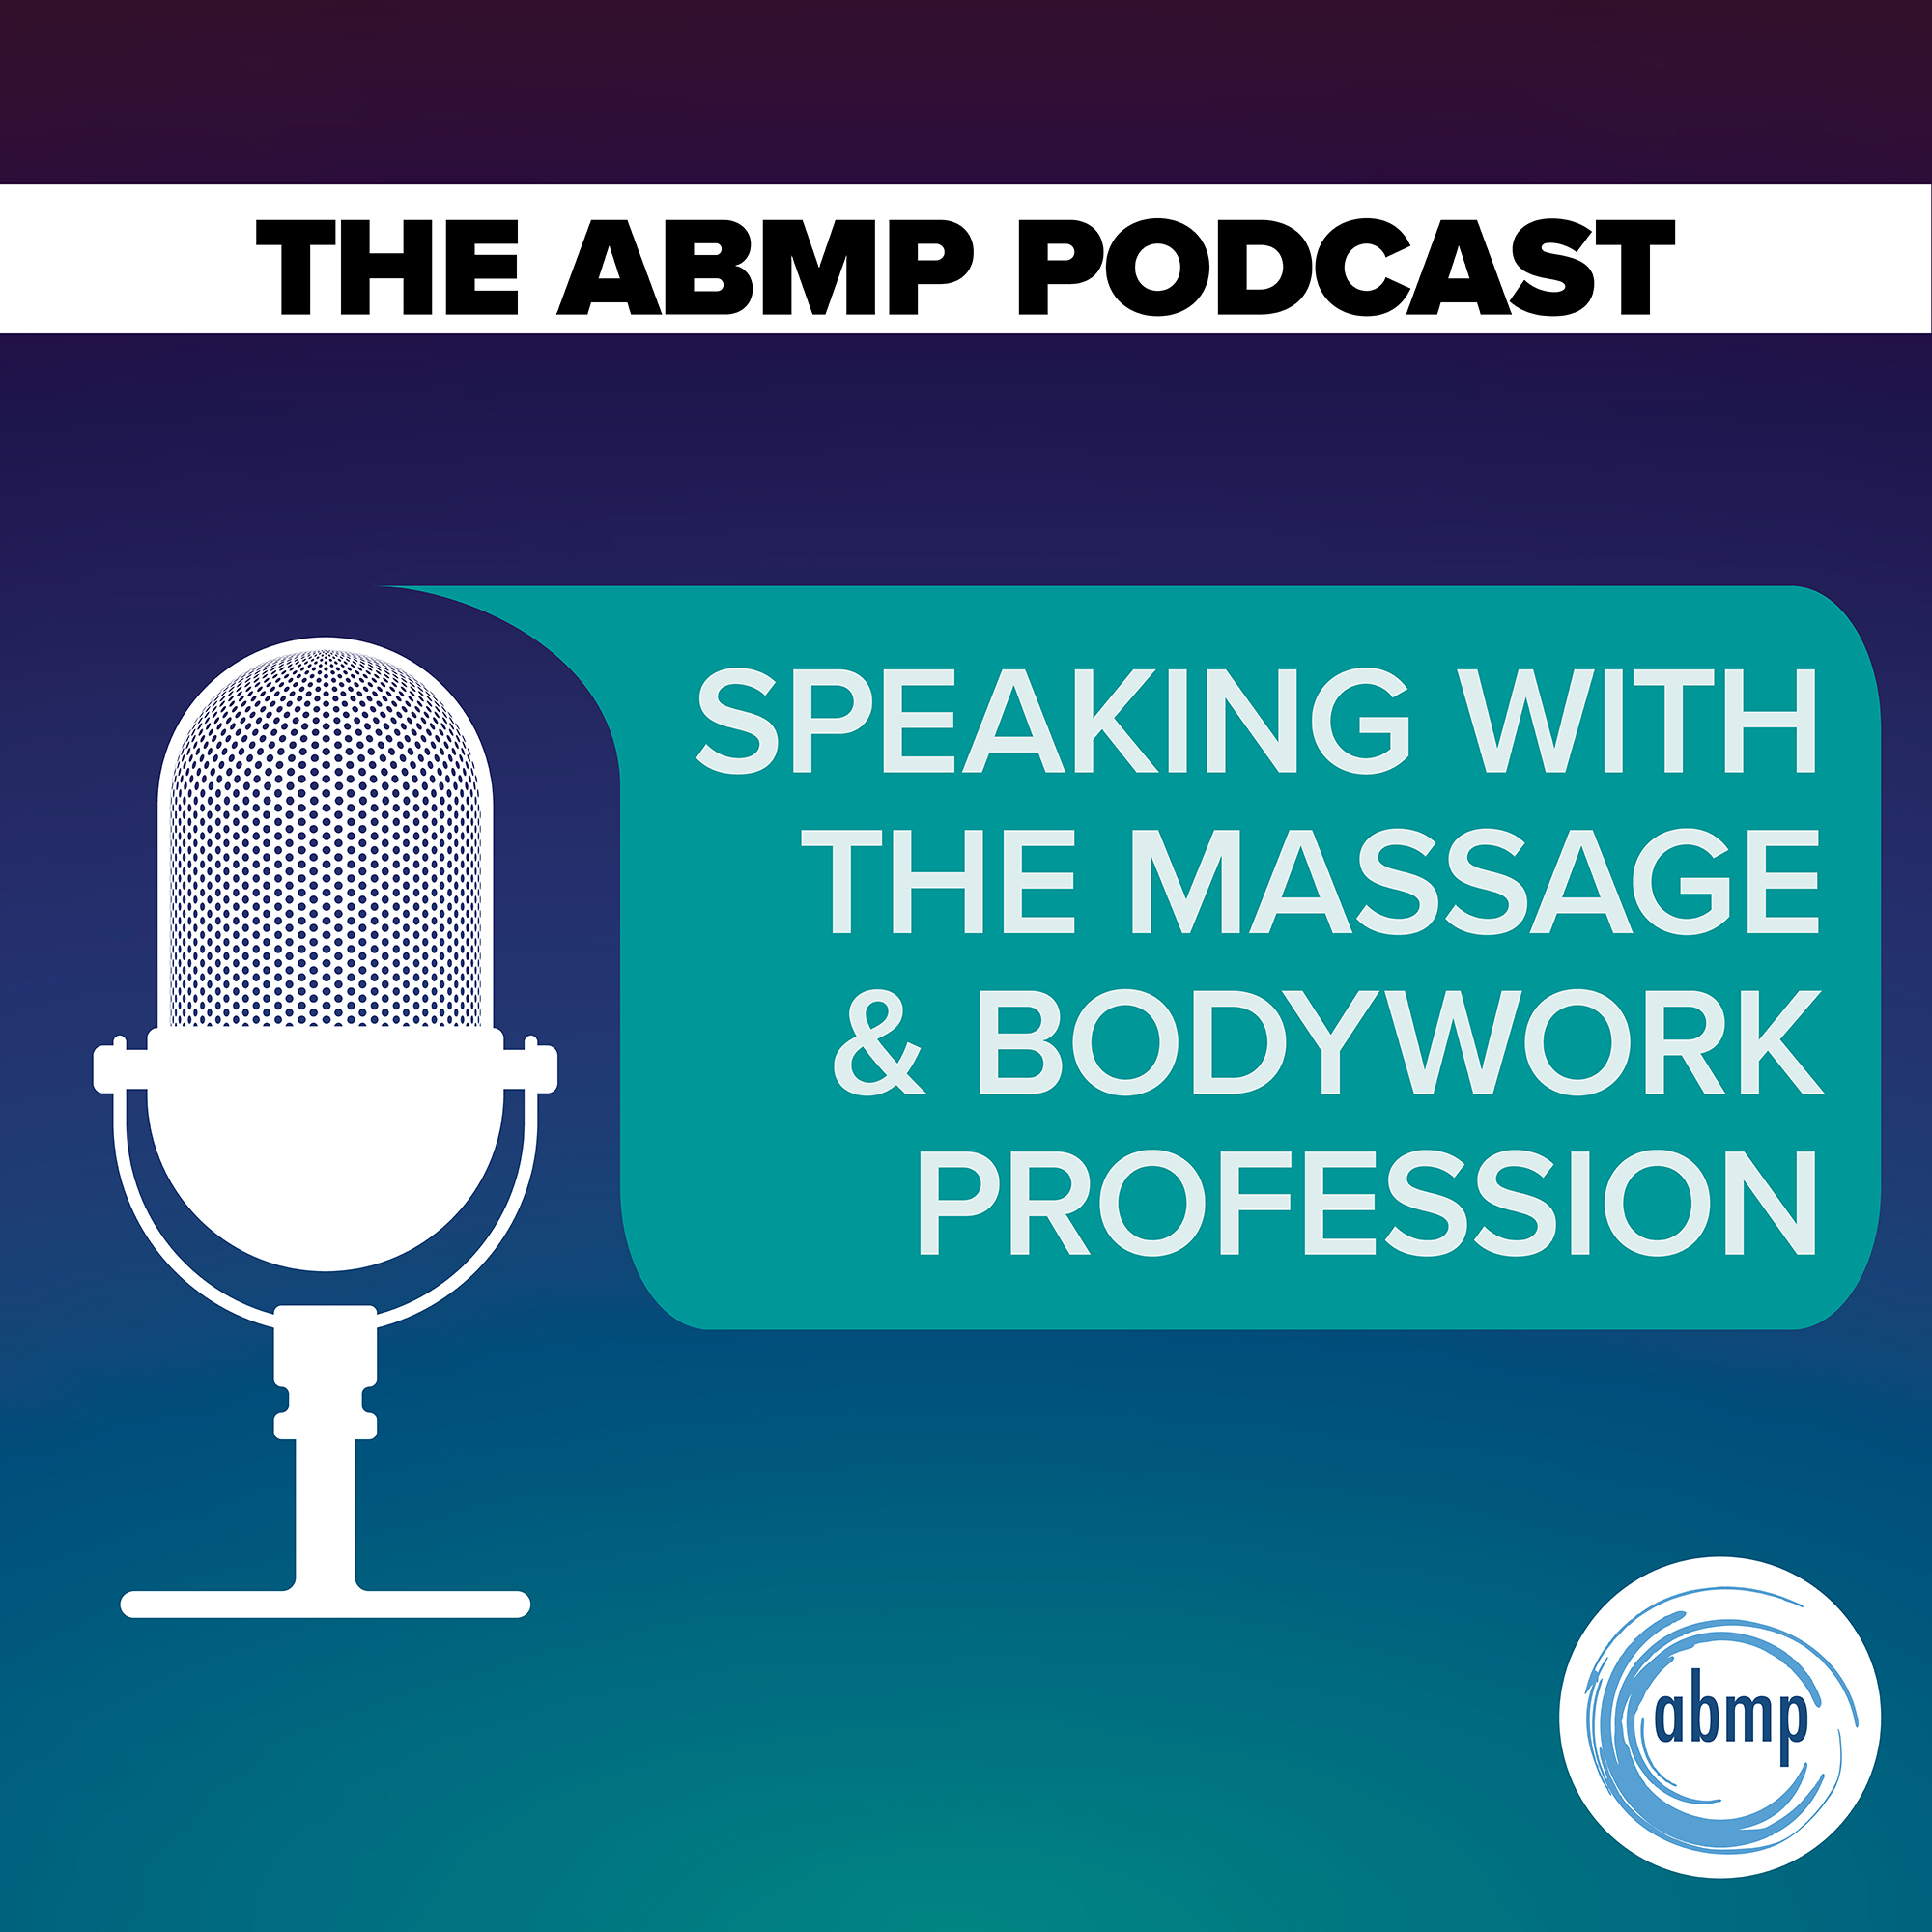 The ABMP Podcast   Speaking With the Massage & Bodywork Profession show art